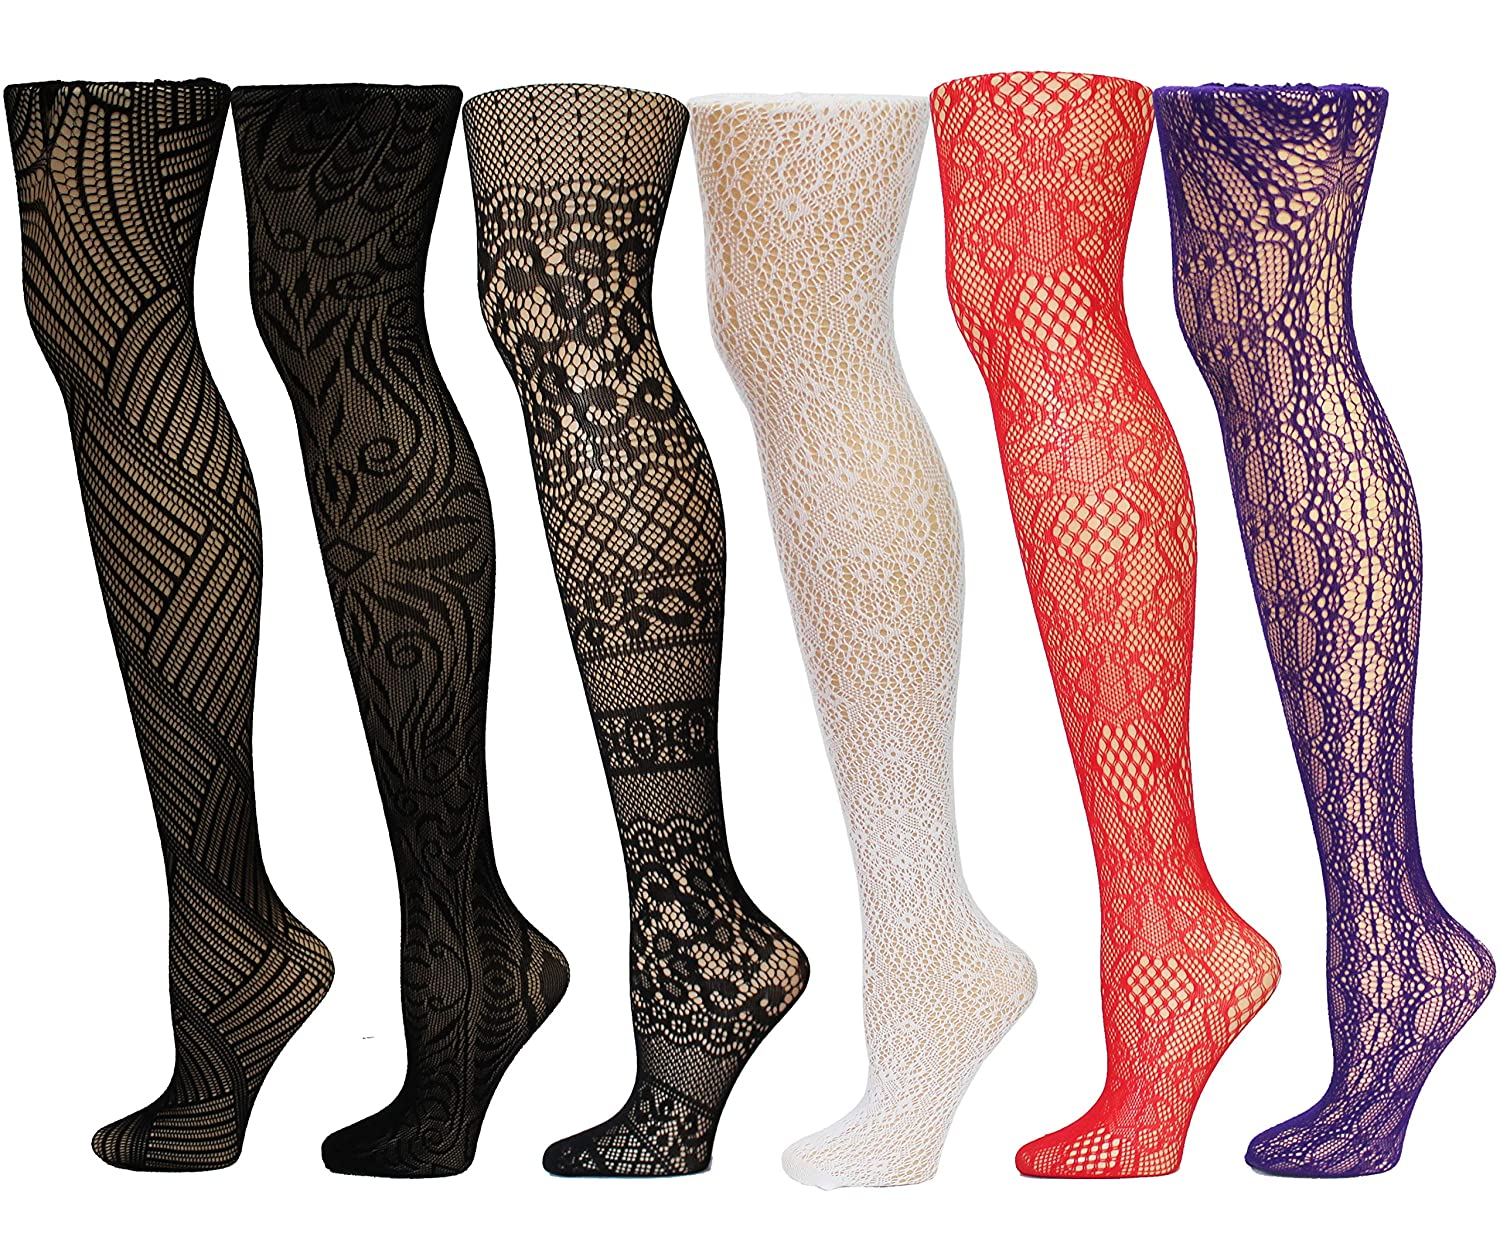 ea97ae0e5 Frenchic Fishnet Women s Lace Stockings Tights Sexy Pantyhose Extended Sizes  (Pack of 6) ... at Amazon Women s Clothing store